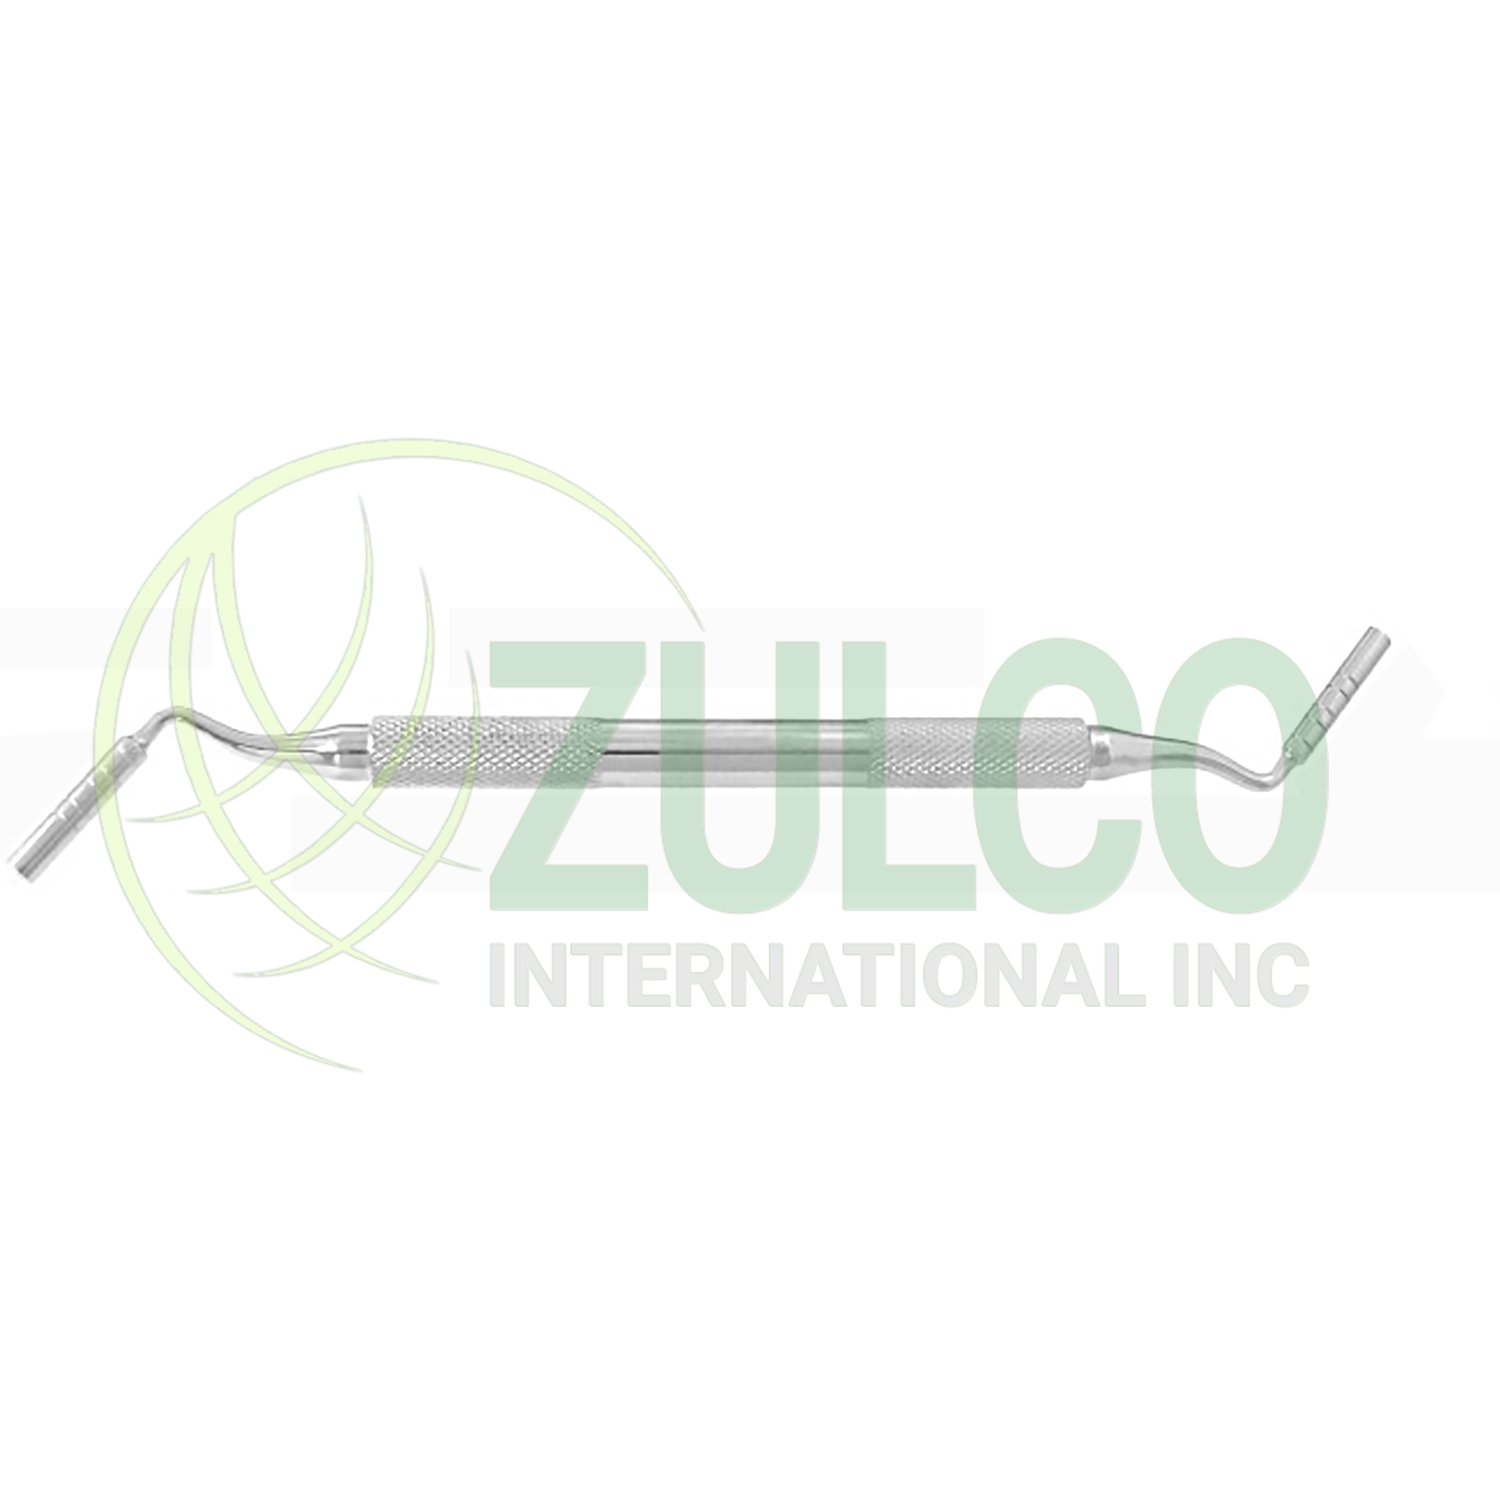 Dental Instruments - Item Code 2307